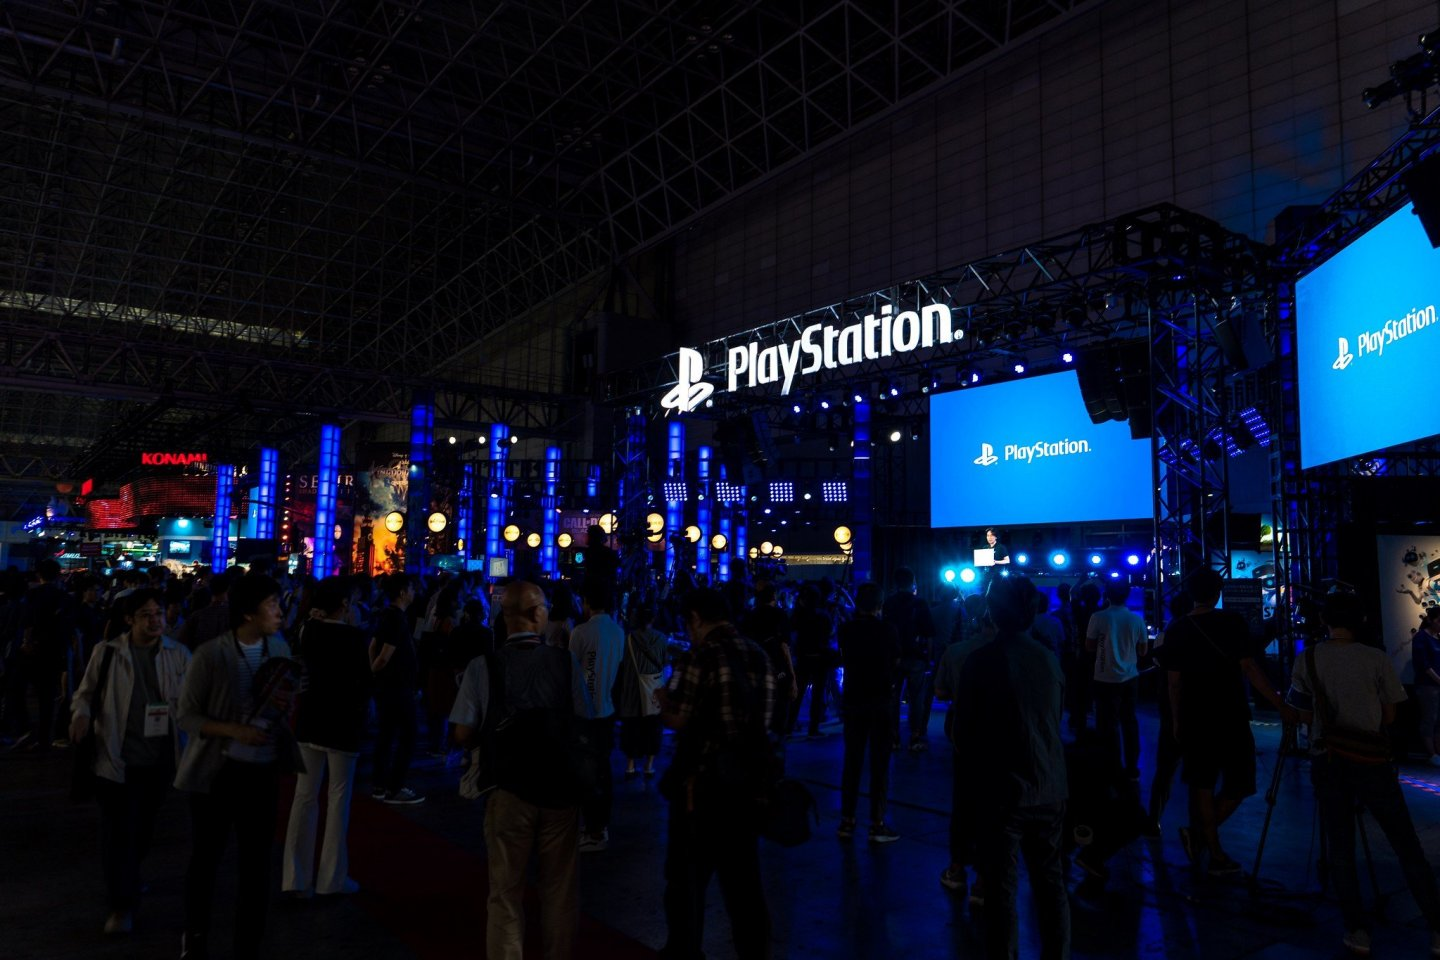 PlayStation at 2018 event